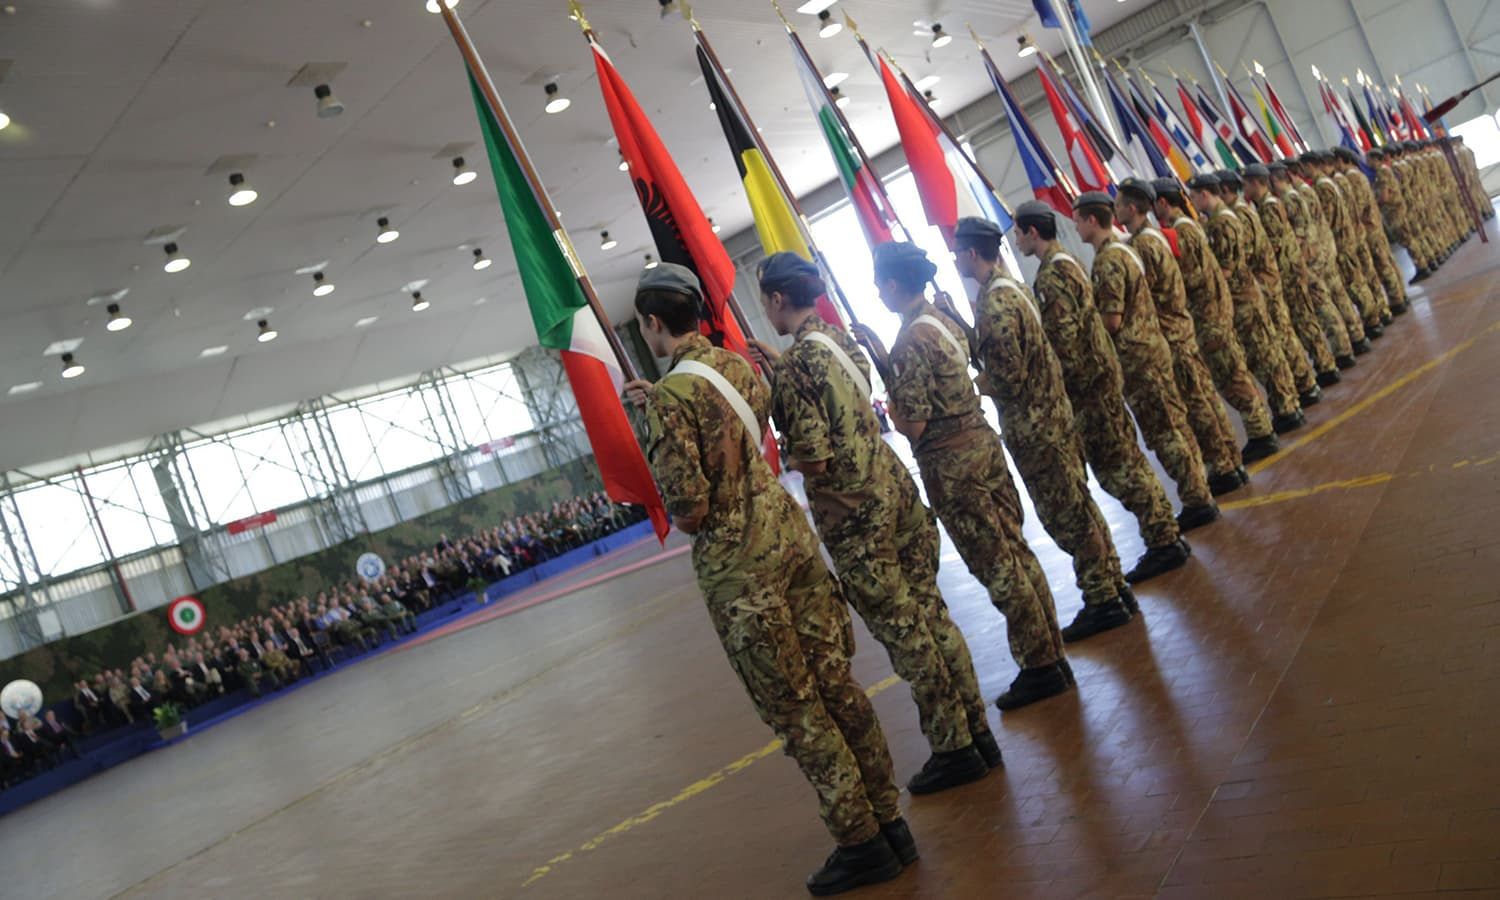 Soldiers attend the opening ceremony of Nato's large scale exercise Trident Juncture 2015 at the Italian Air Force Base in Trapani, Sicily. — AFP